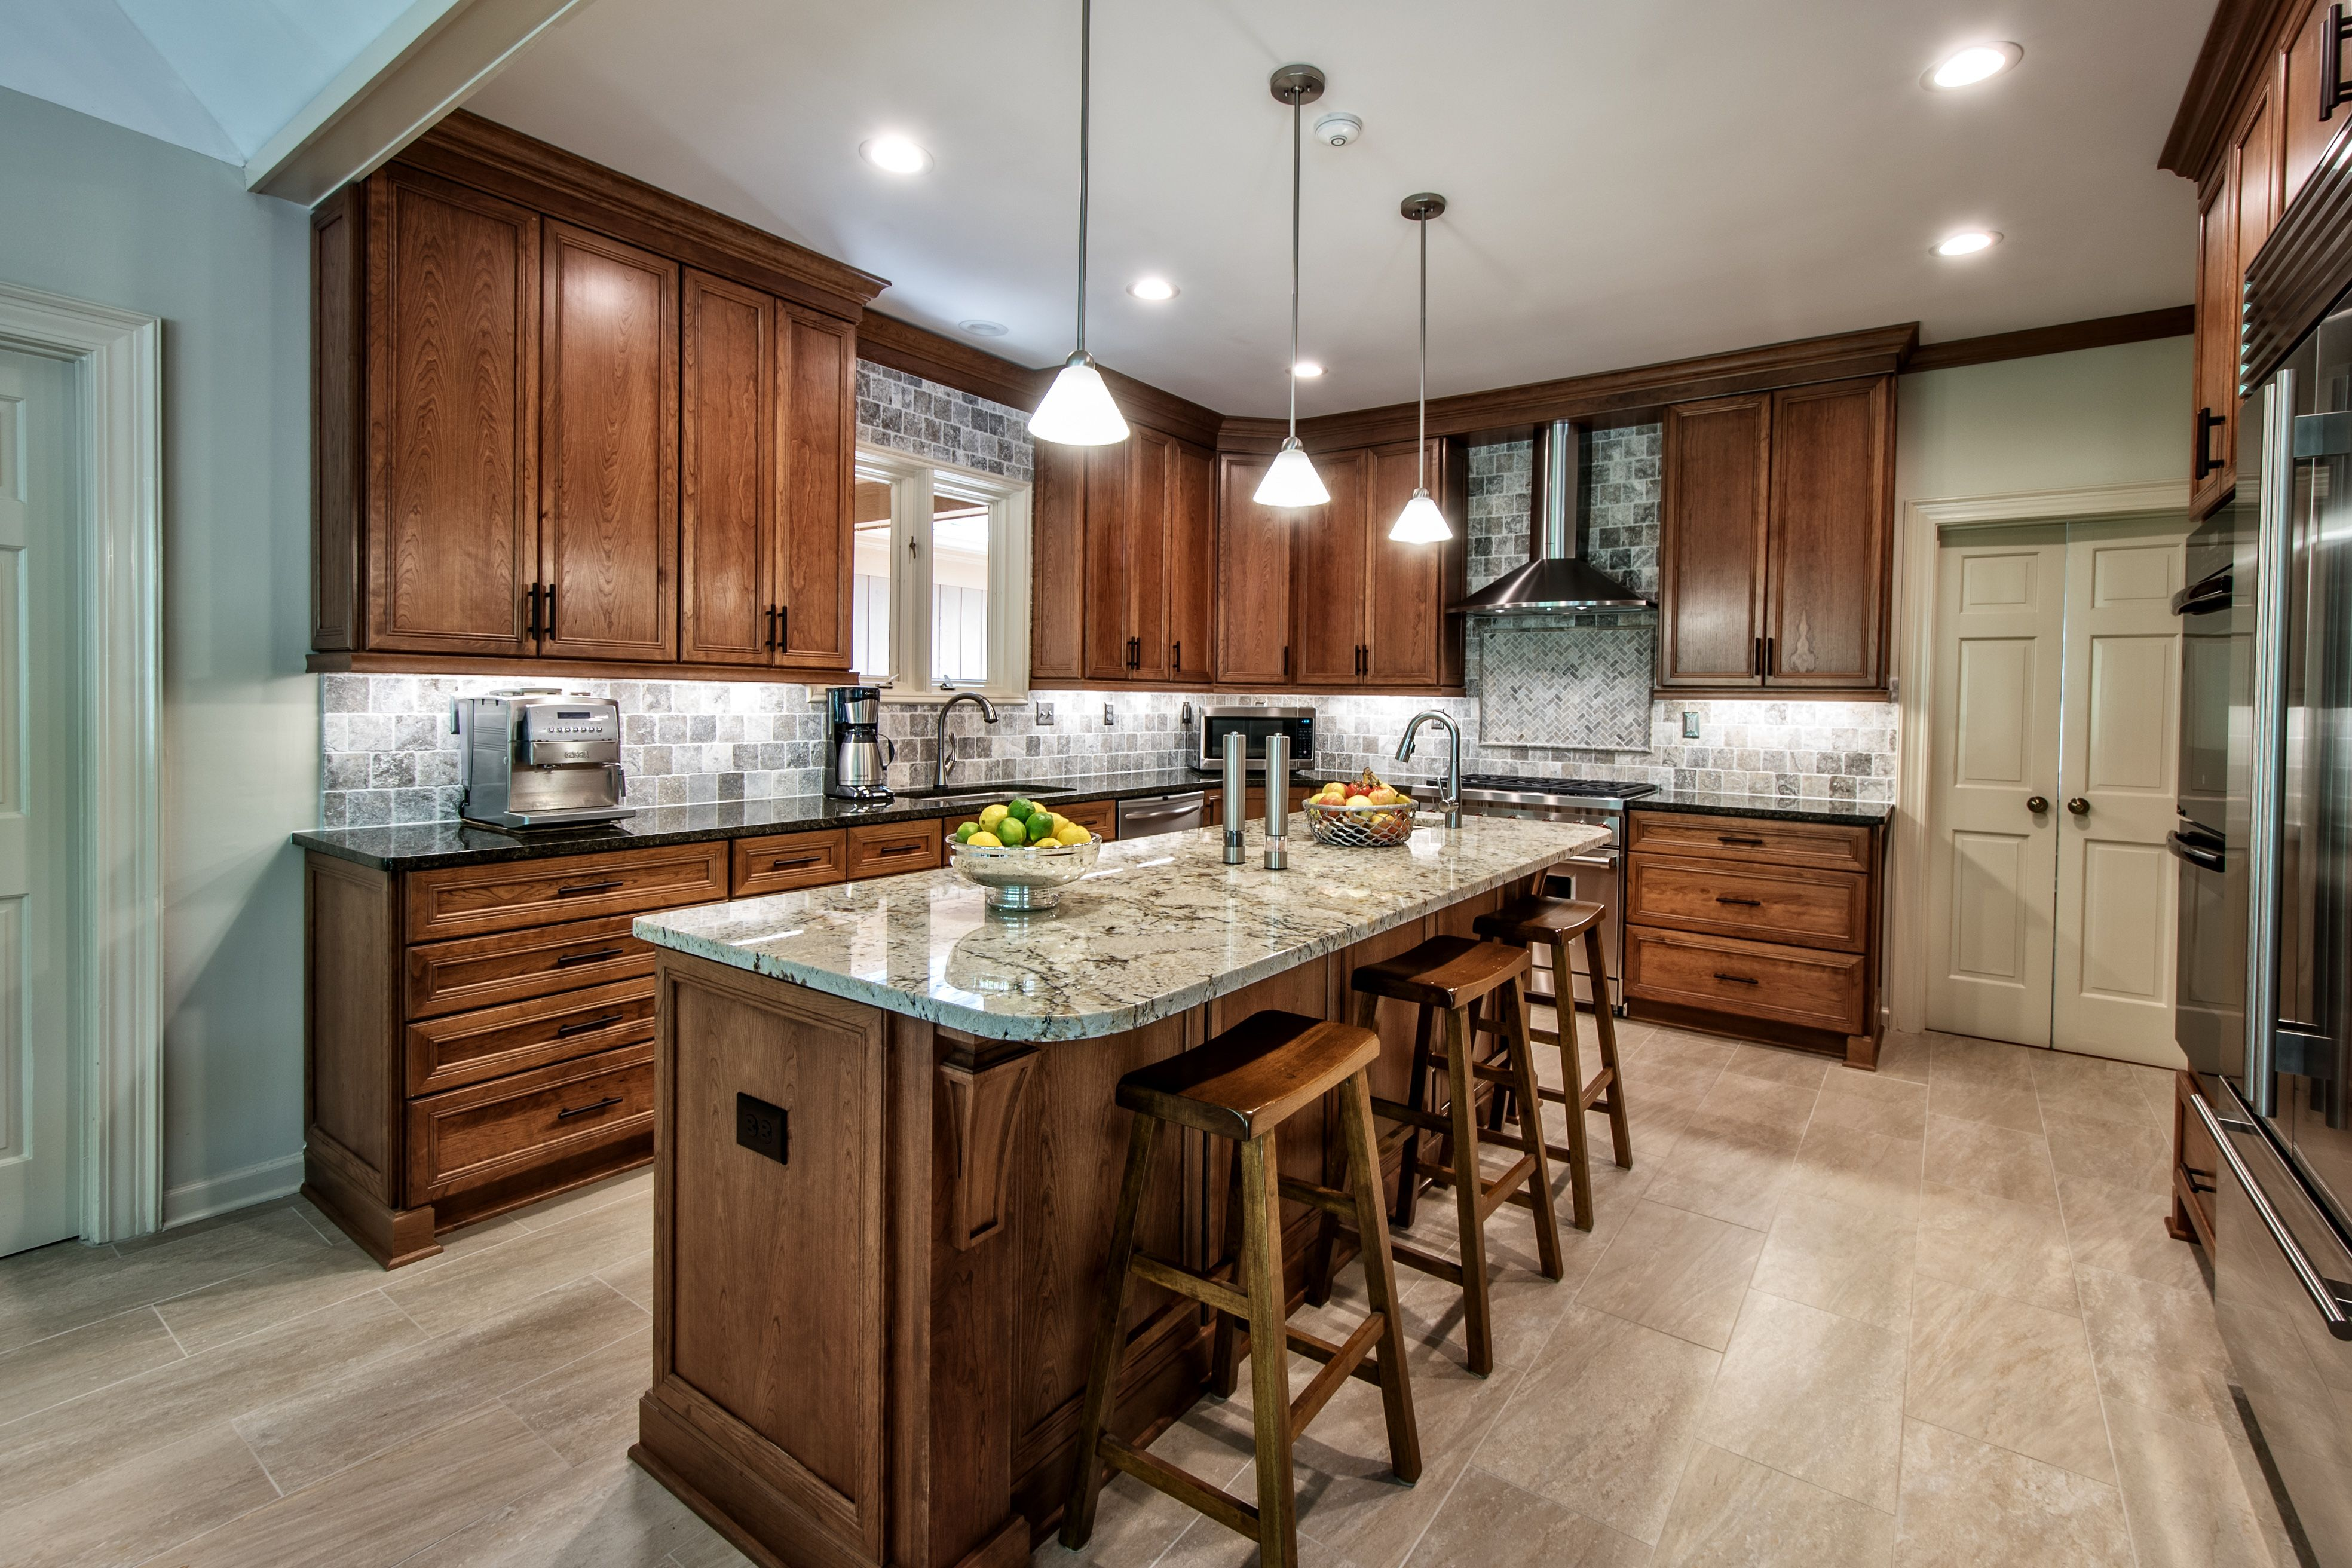 Design Build Home Remodeling Services In Memphis And Germantown Tn